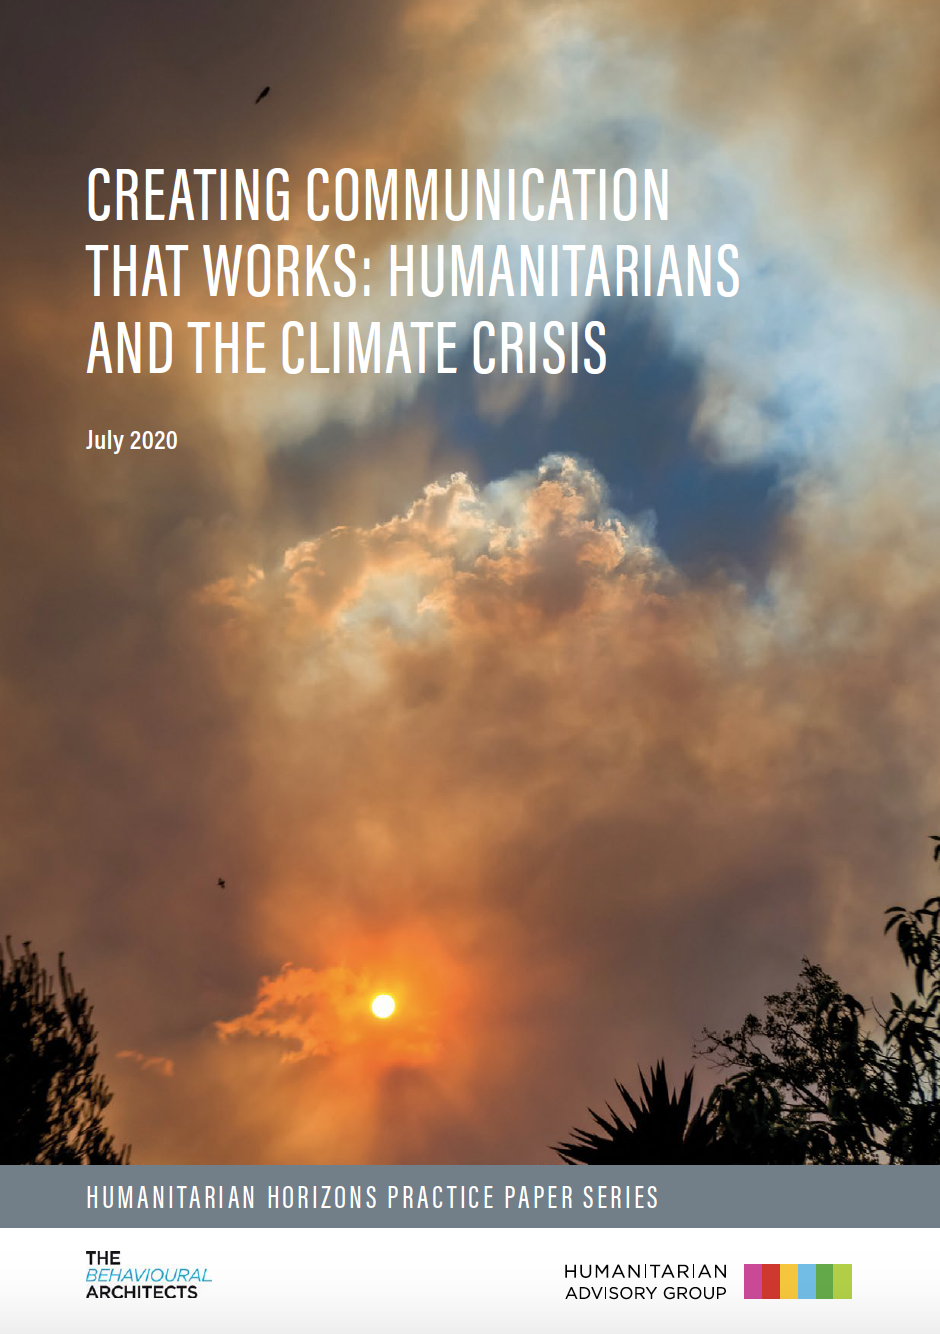 Creating Communication That Works: Humanitarians and the climate crisis